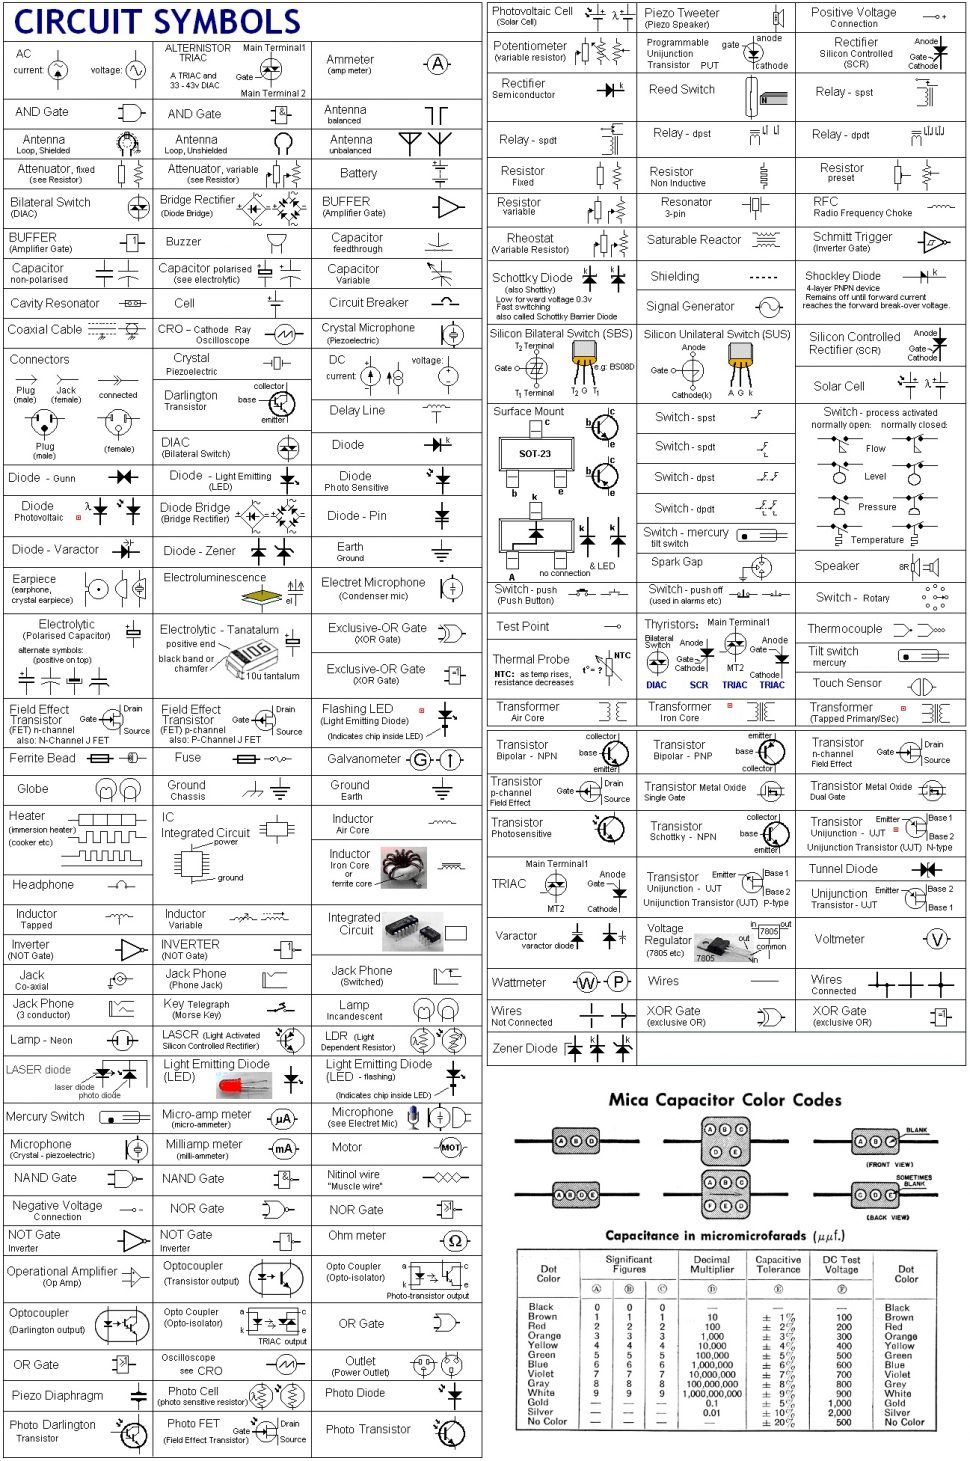 component wiring schematic symbols and meanings electrical download wire autocad australian standards relay schematics for word chart pdf uk wire schematic  [ 970 x 1461 Pixel ]